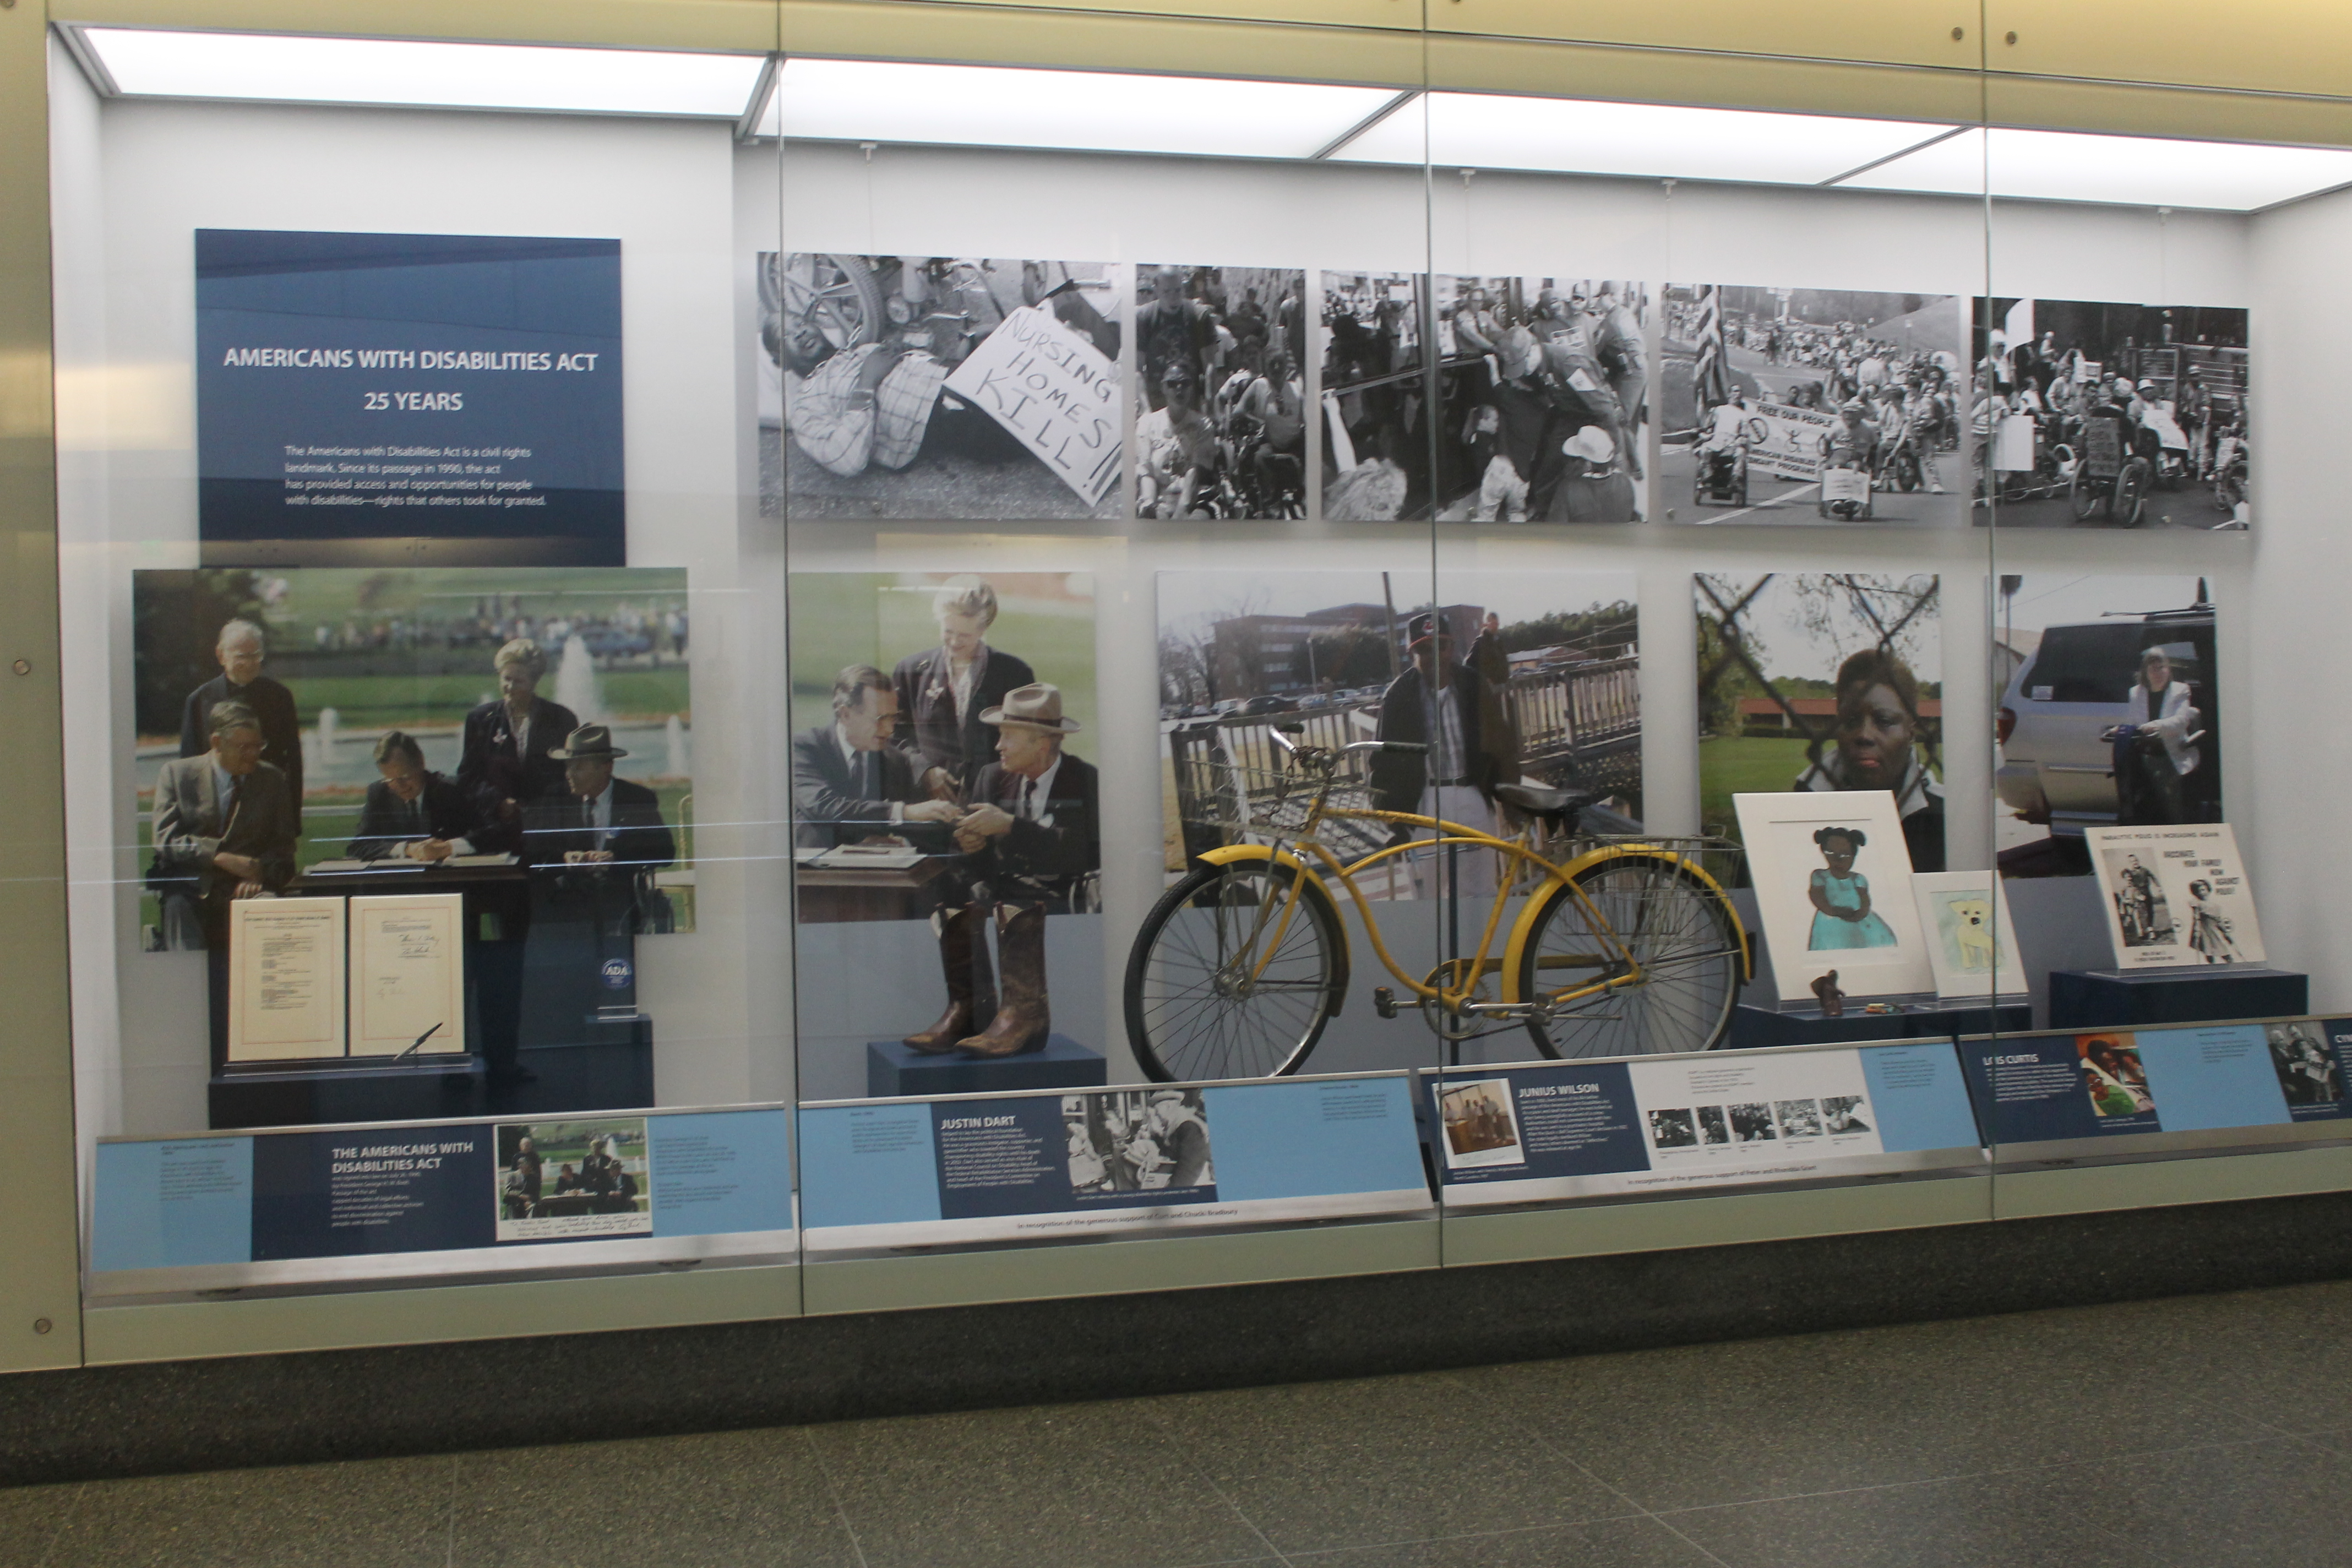 """The Americans with Disabilities Act, 1990-2015"" artifact wall, showing large graphics of the signing of the law by Pres. Bush, a yellow bike, and other artifacts behind glass on display in a shallow, tall case"